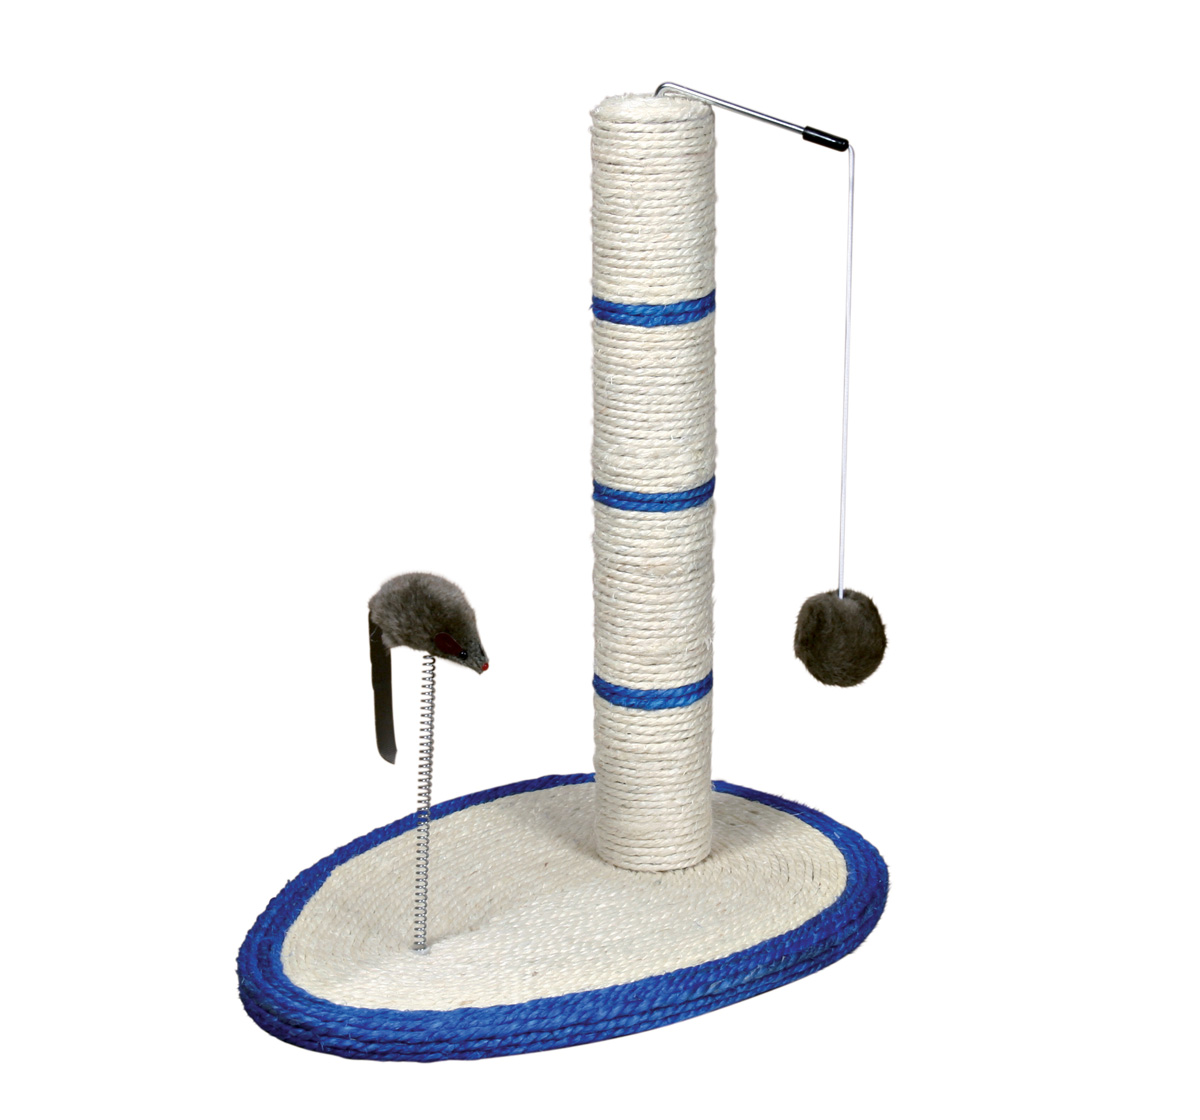 Trixie Me Scratching Post - (Floor area 50.8x30.4 cm)